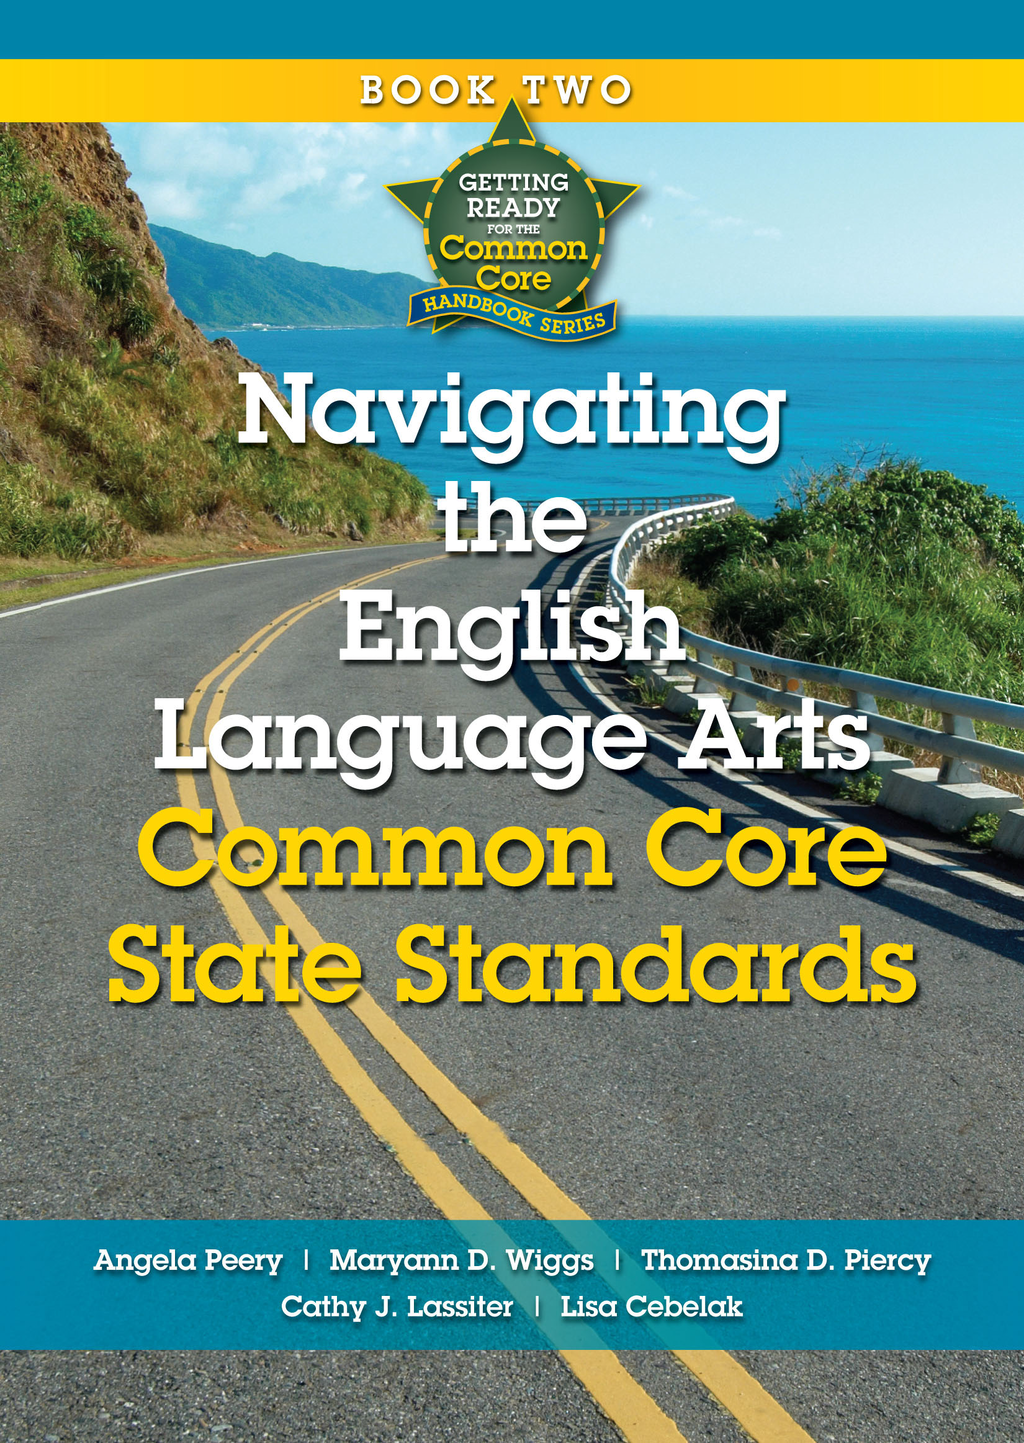 Navigating the English Language Arts Common Core State Standards